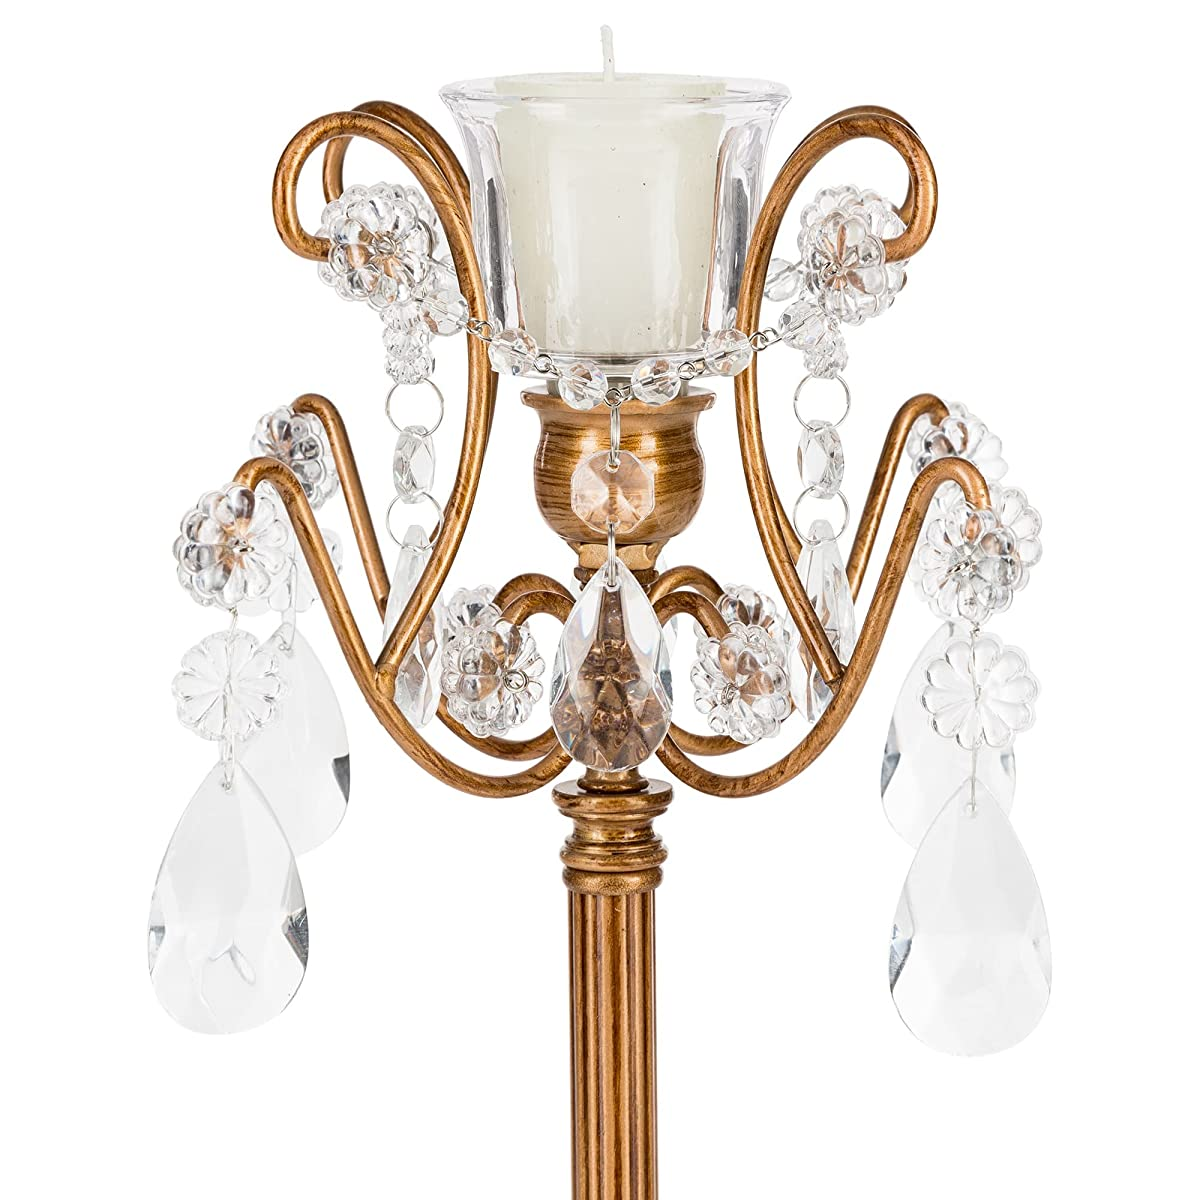 Candlestick Holder with Glass Crystals, 1-Light Wedding Centerpiece Home Decoration Tea Light and Taper Candle (Gold)